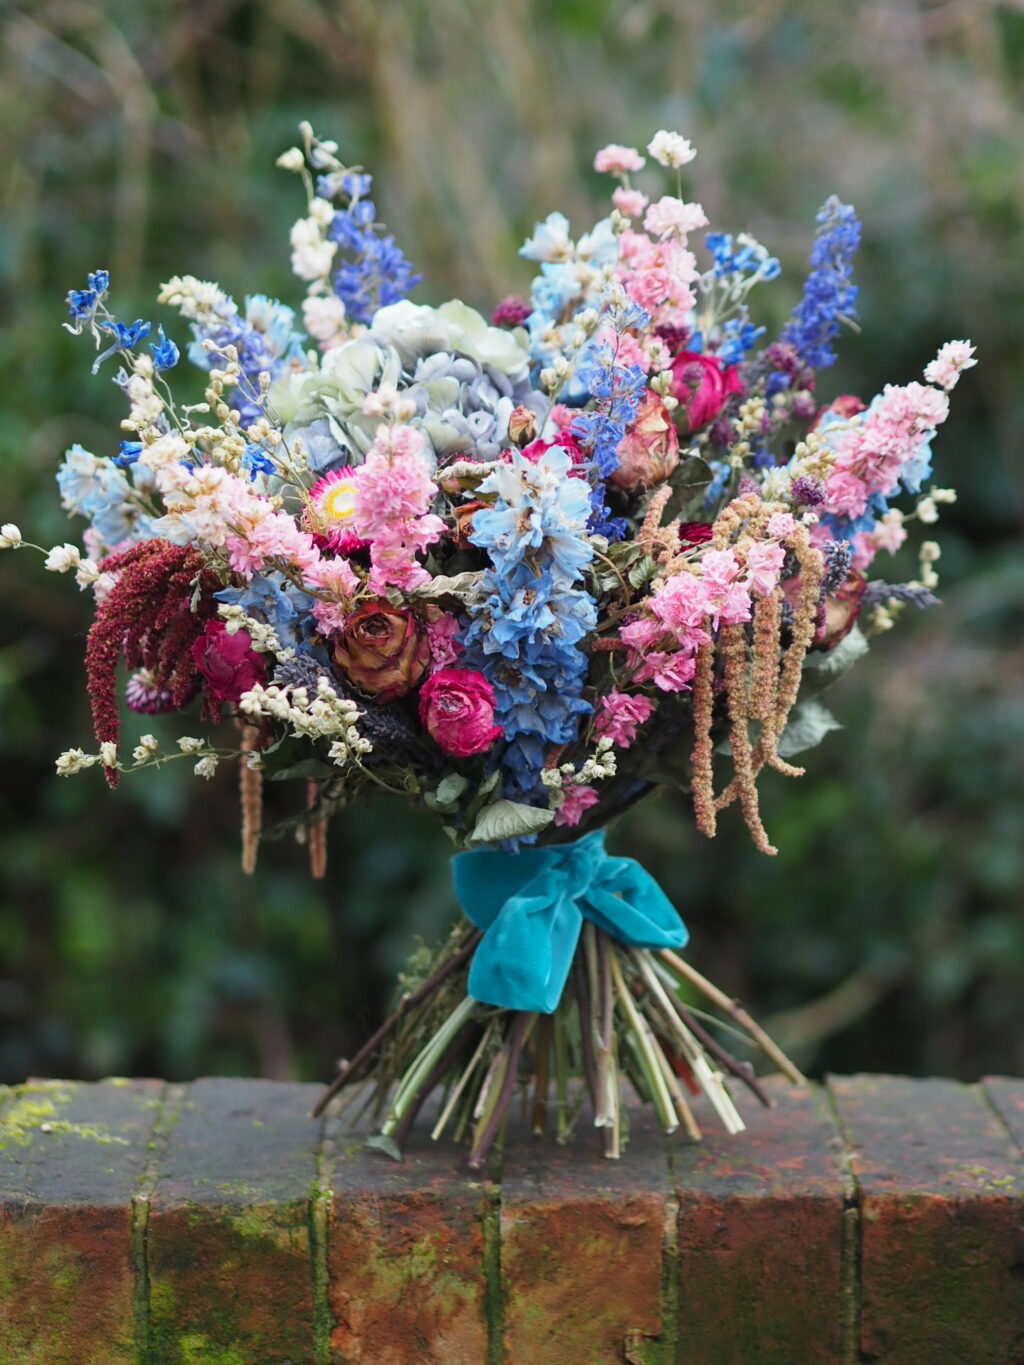 A beautiful bouquet of dried flowers tied with a turquoise ribbon by Flowers by the Bridge